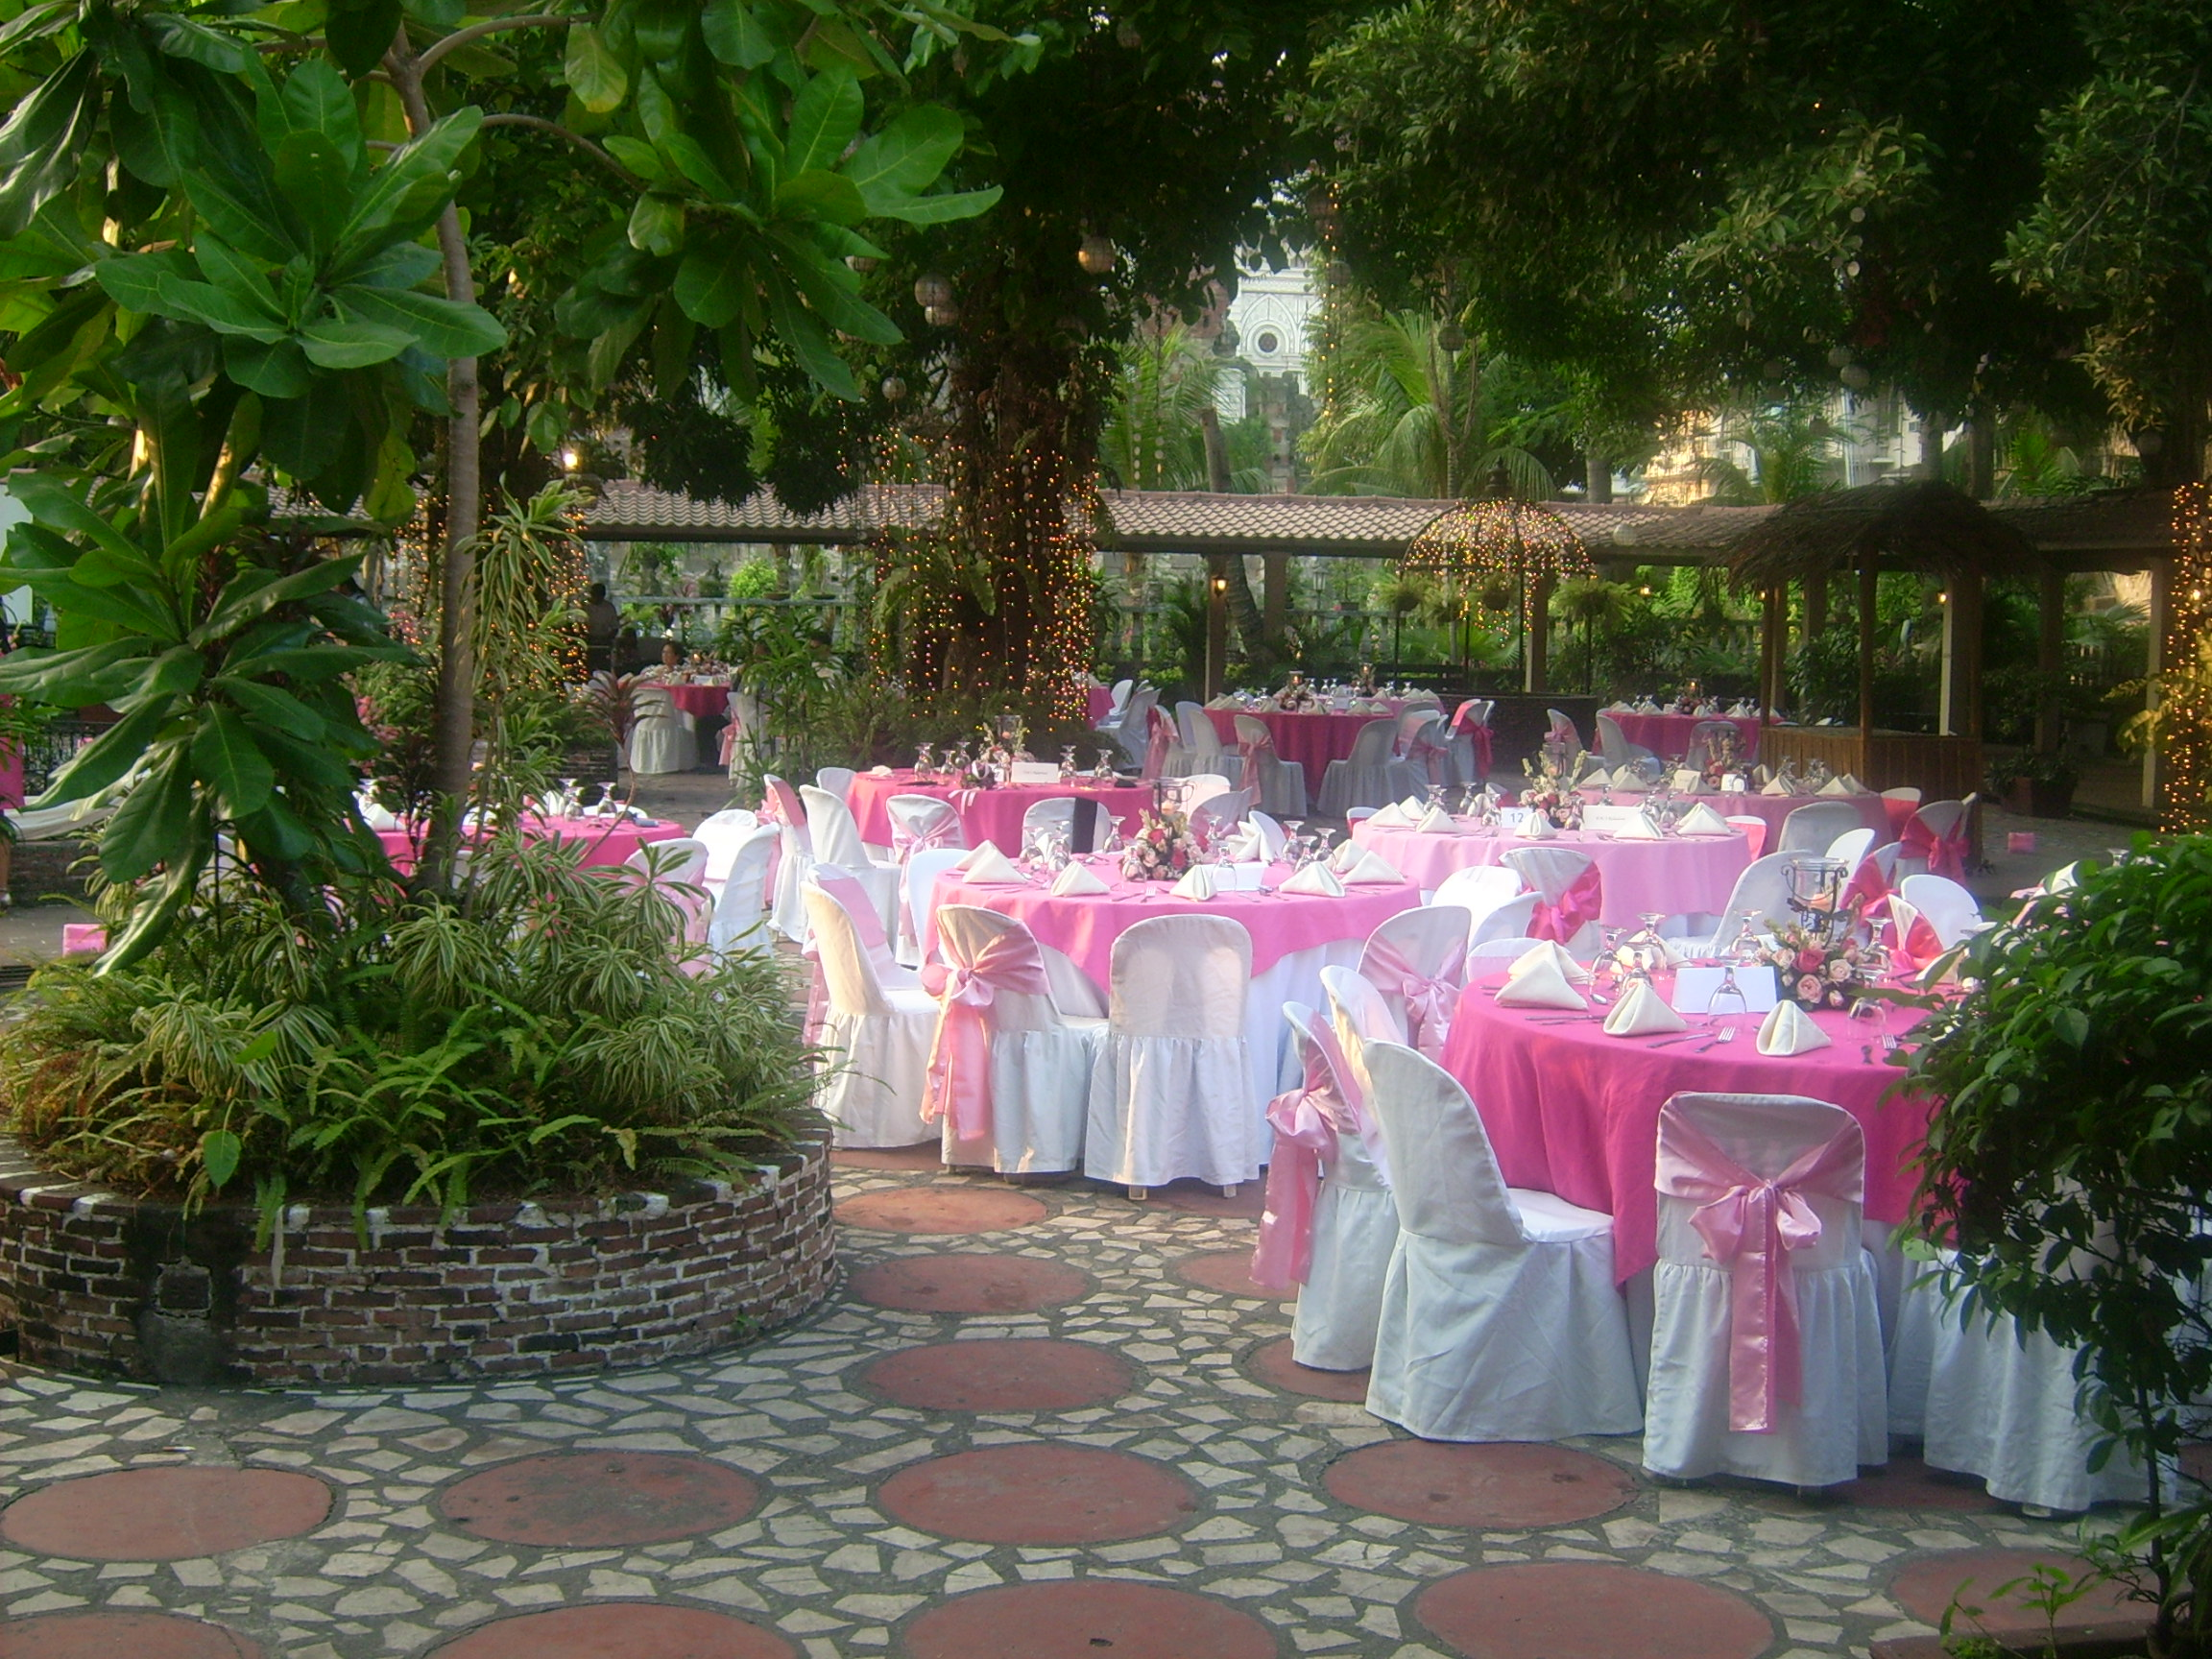 Garden wedding ideas in the philippines photograph beautif beautiful garden wedding reception area in the philippines junglespirit Gallery